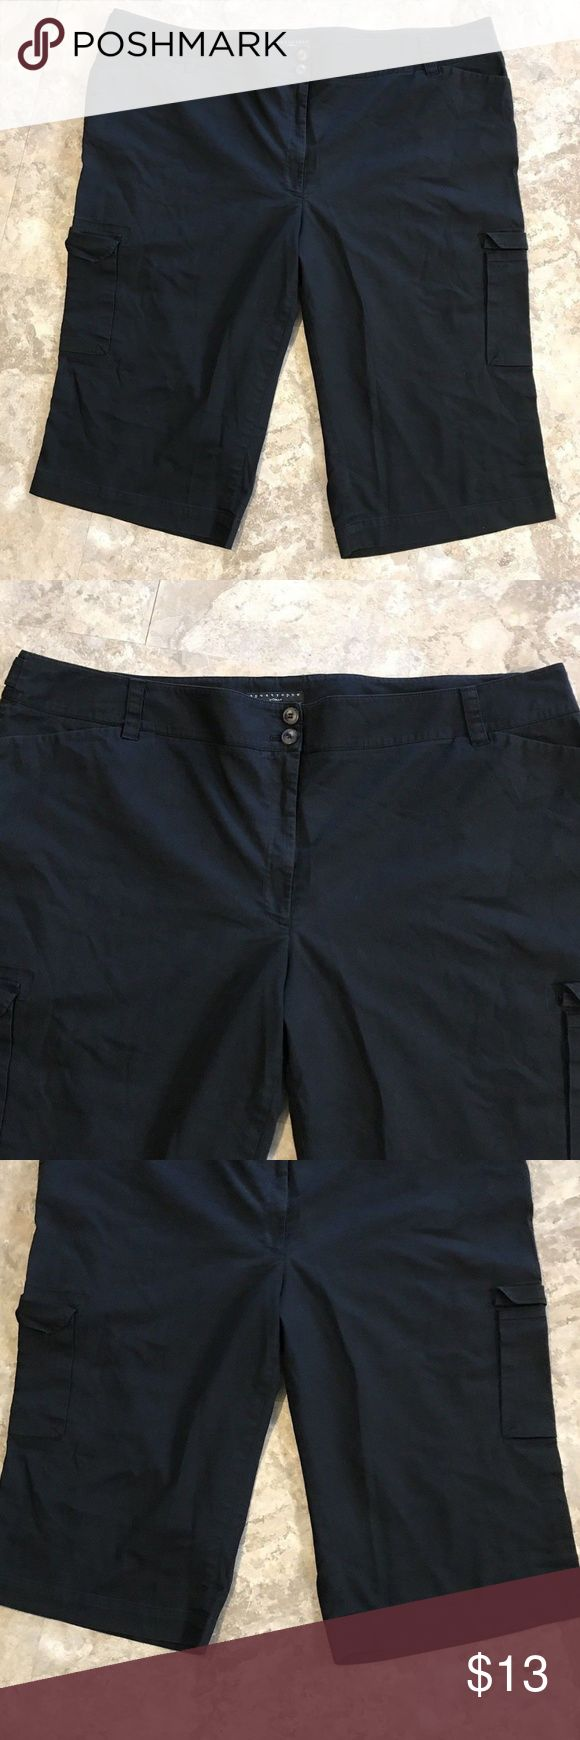 """Apostrophe Women's Capris Cropped Pants Sz 24W Apostrophe Women's Black Capris Cropped Pants Pockets Plus Size 24W  Good Condition.   MEASUREMENTS:  Waist (hip to hip, unstretched) 23"""" Length 29"""" Rise 12"""" Inseam 18""""  Please check out our other listings. New items added daily :) Feel free to ask any questions! Apostrophe Pants Capris"""